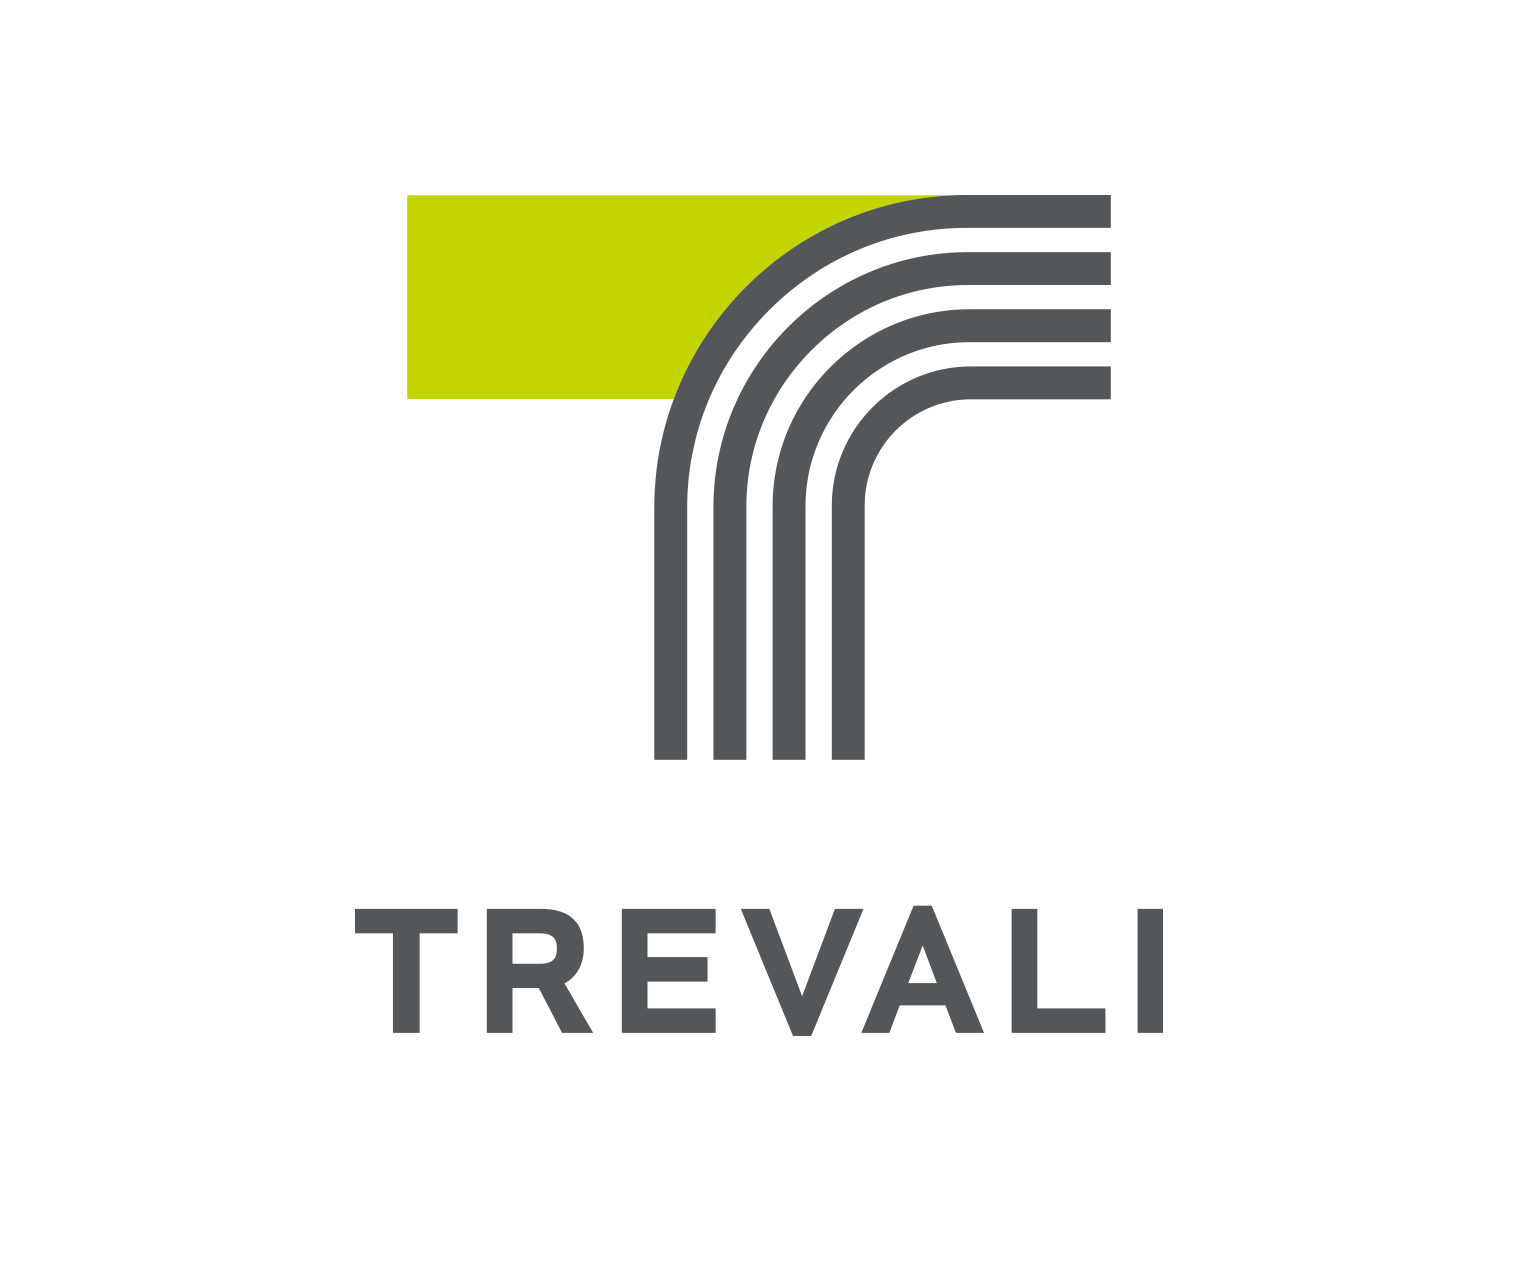 Trevali Exceeds 2019 Production Guidance, Achieves Record Annual Zinc Production and Provides 2020 Guidance